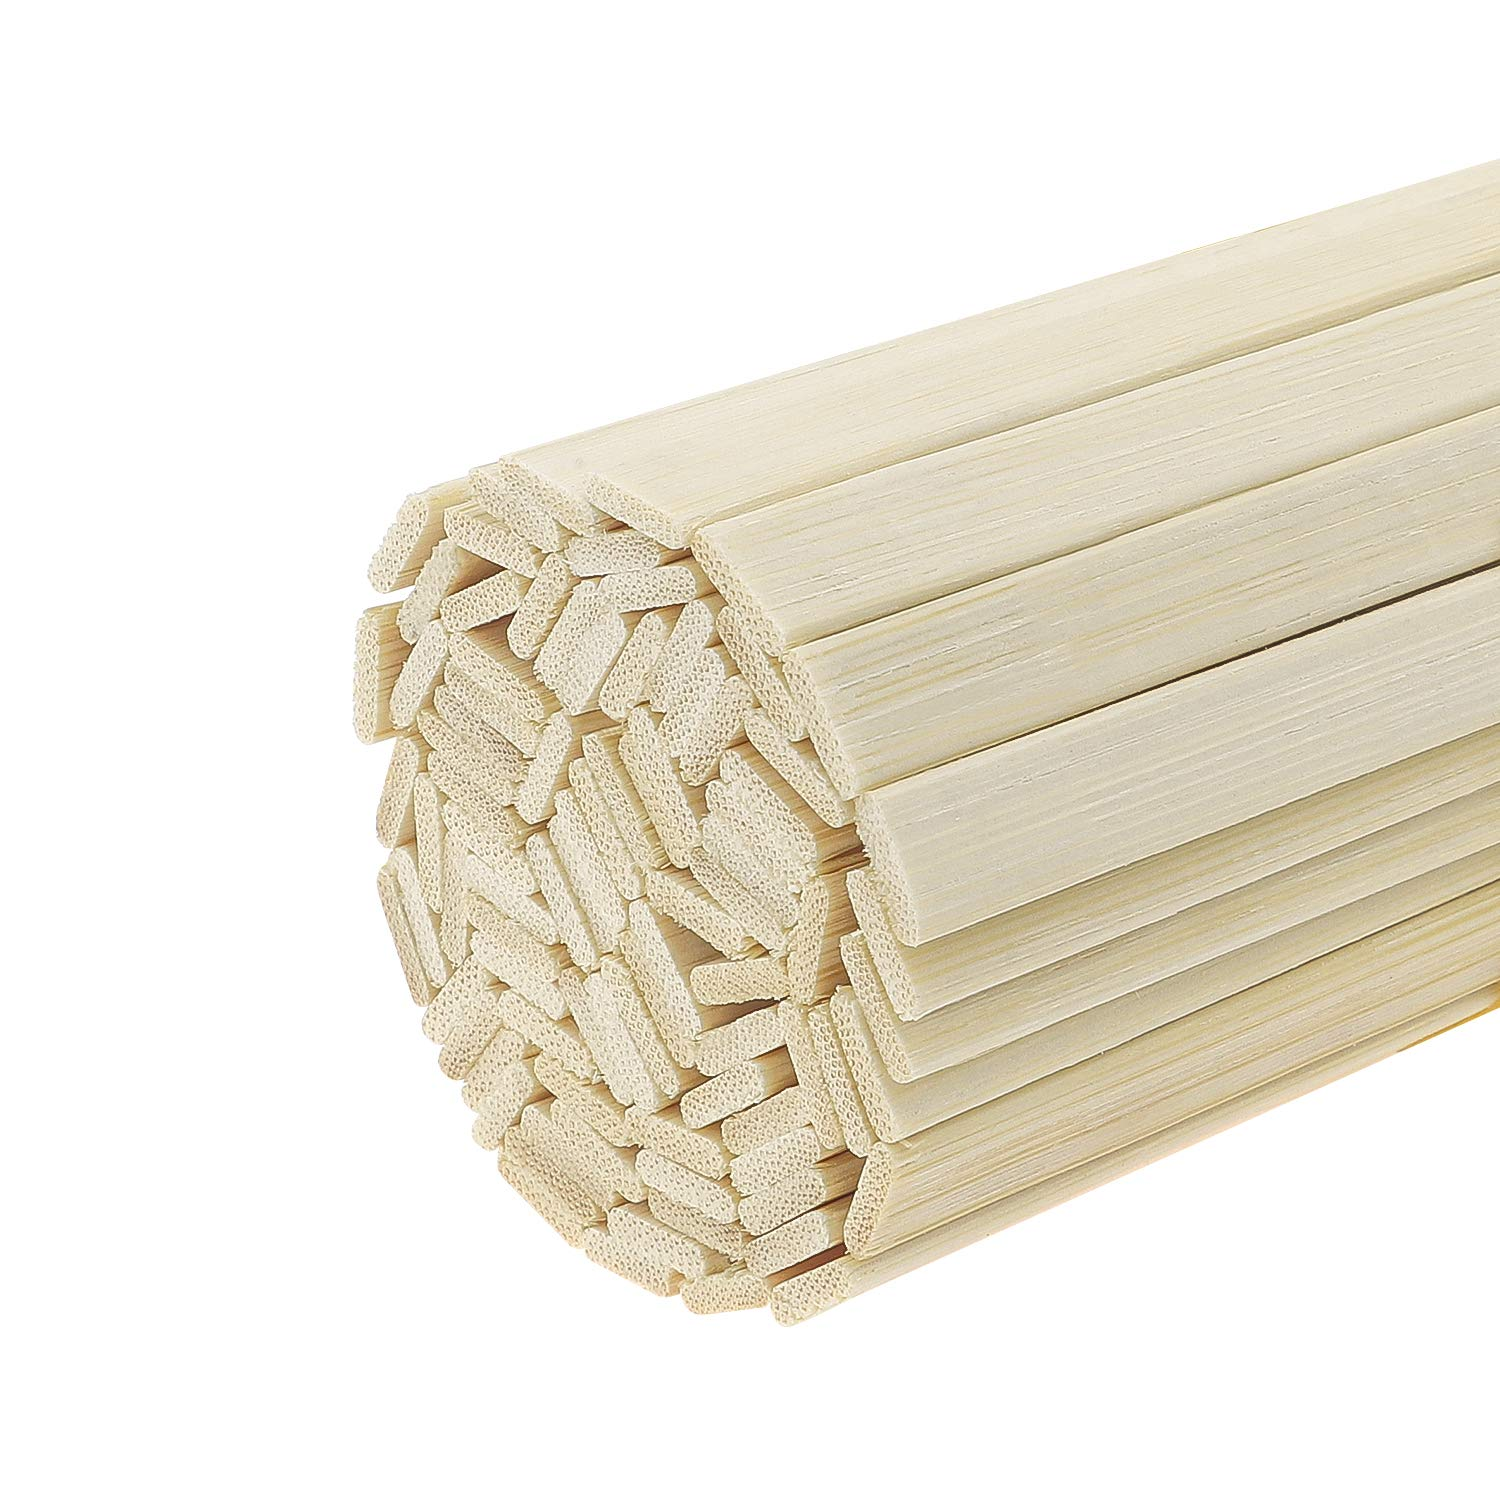 Favordrory 11.8 Inches Wood Craft Sticks Natural Bamboo Sticks, Bamboo Strips, Strong Natural Bamboo Sticks (100 Pieces)